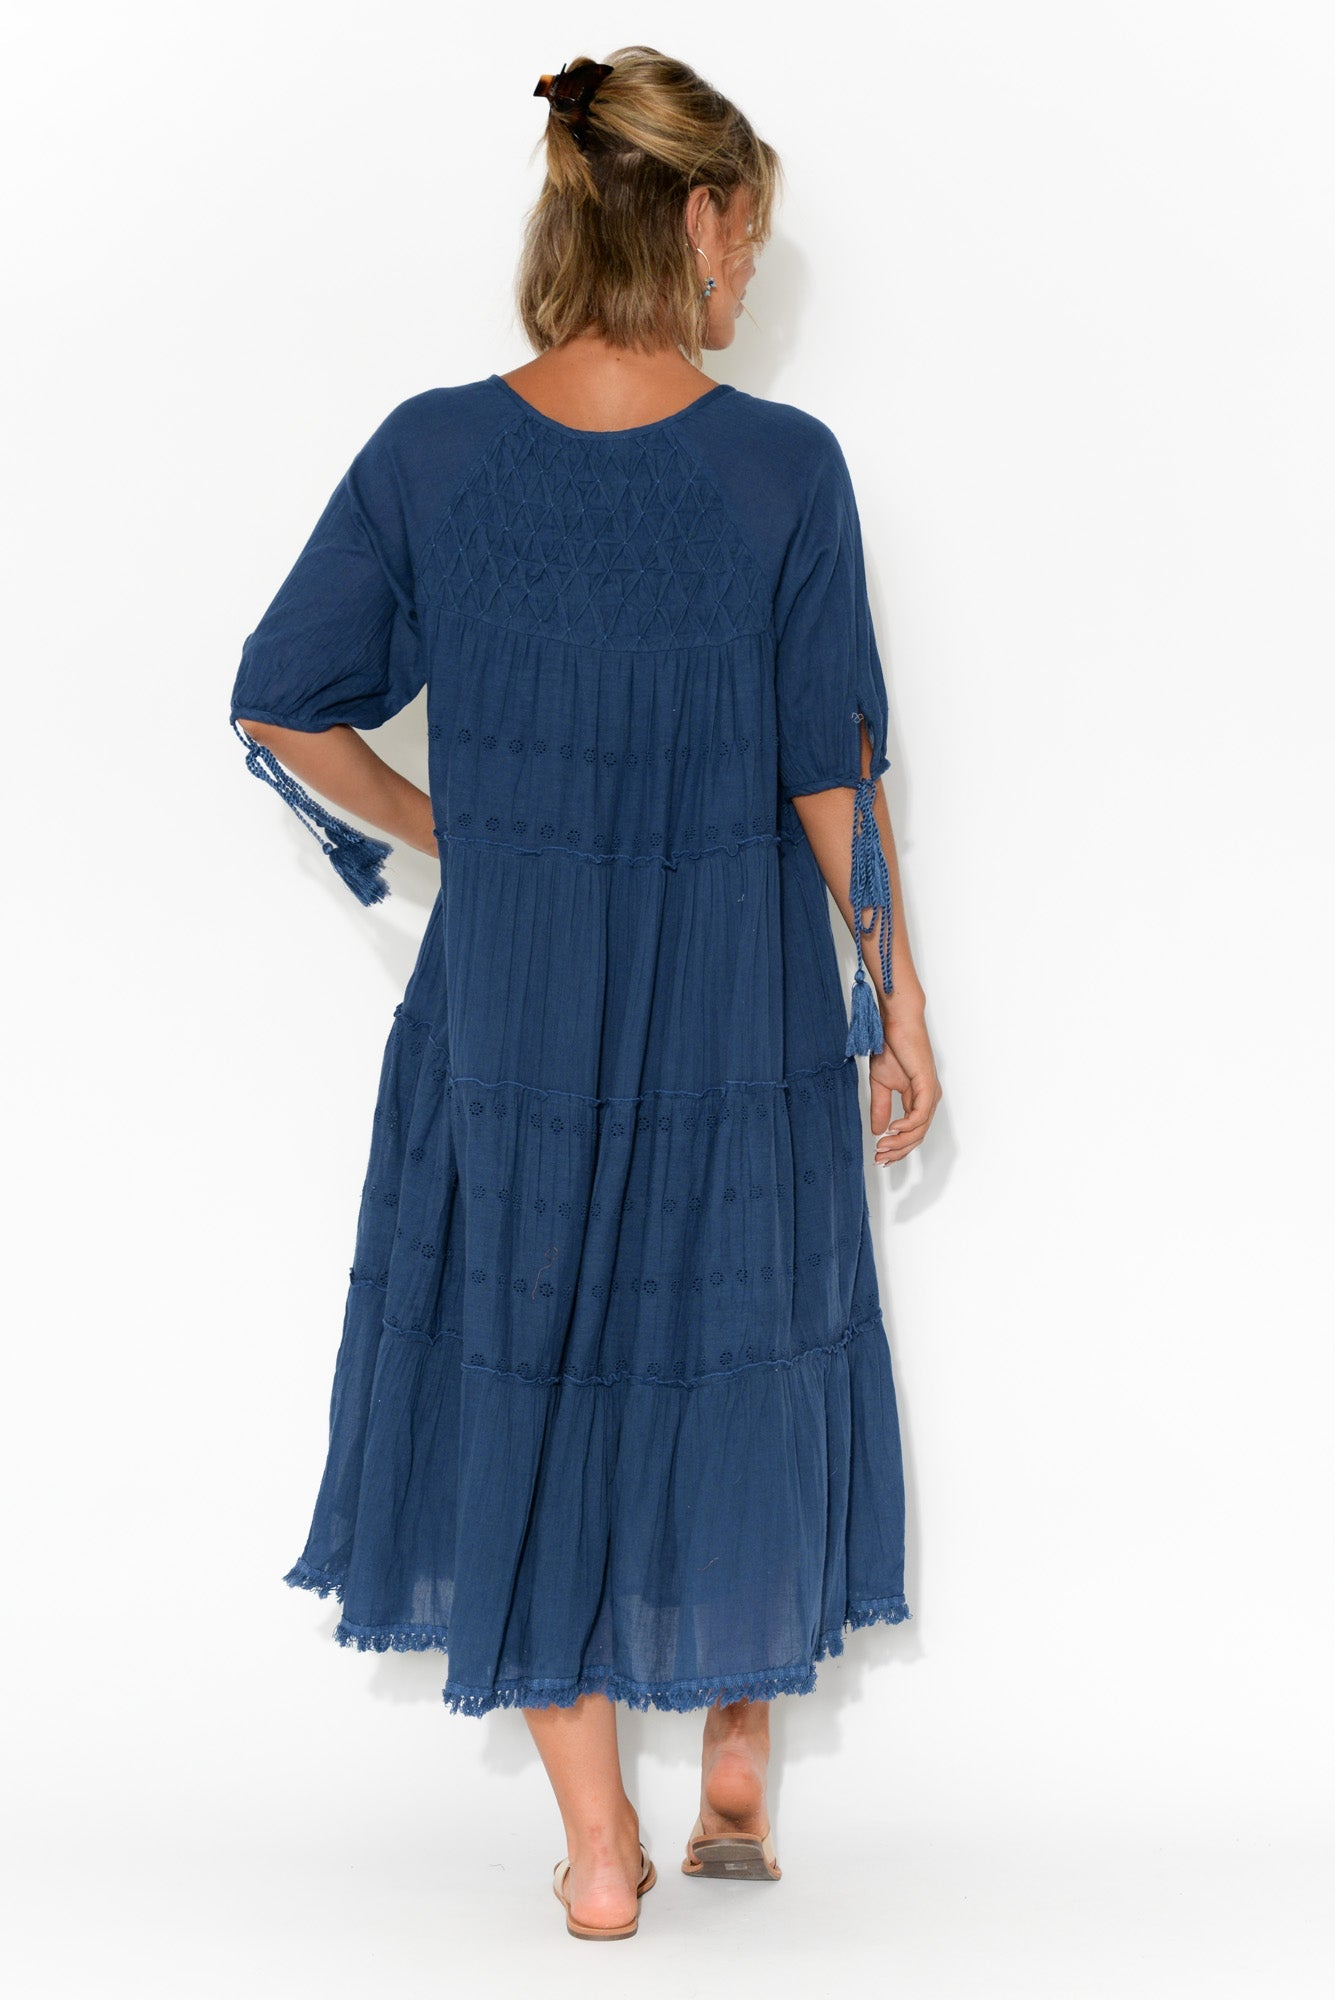 Judith Embroidered Navy Cotton Dress